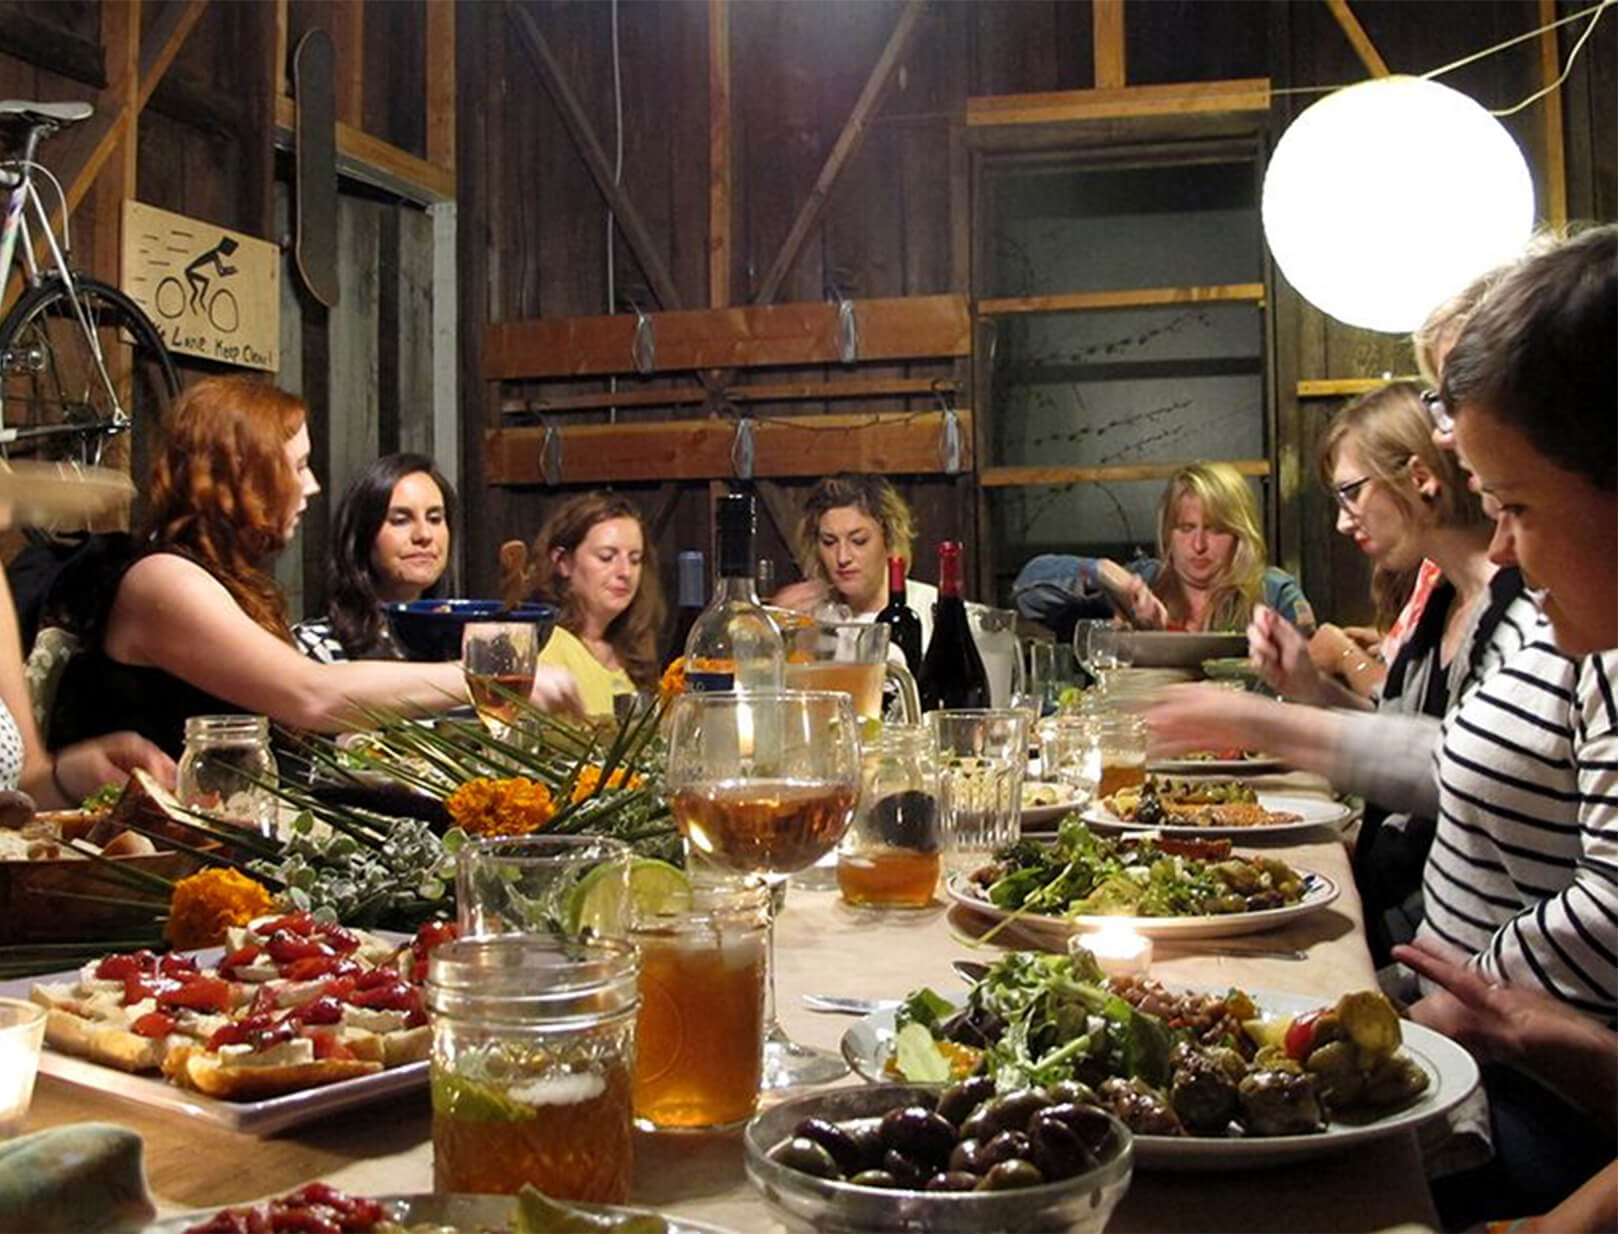 The memorial dinner party goop for Best dinner party ideas